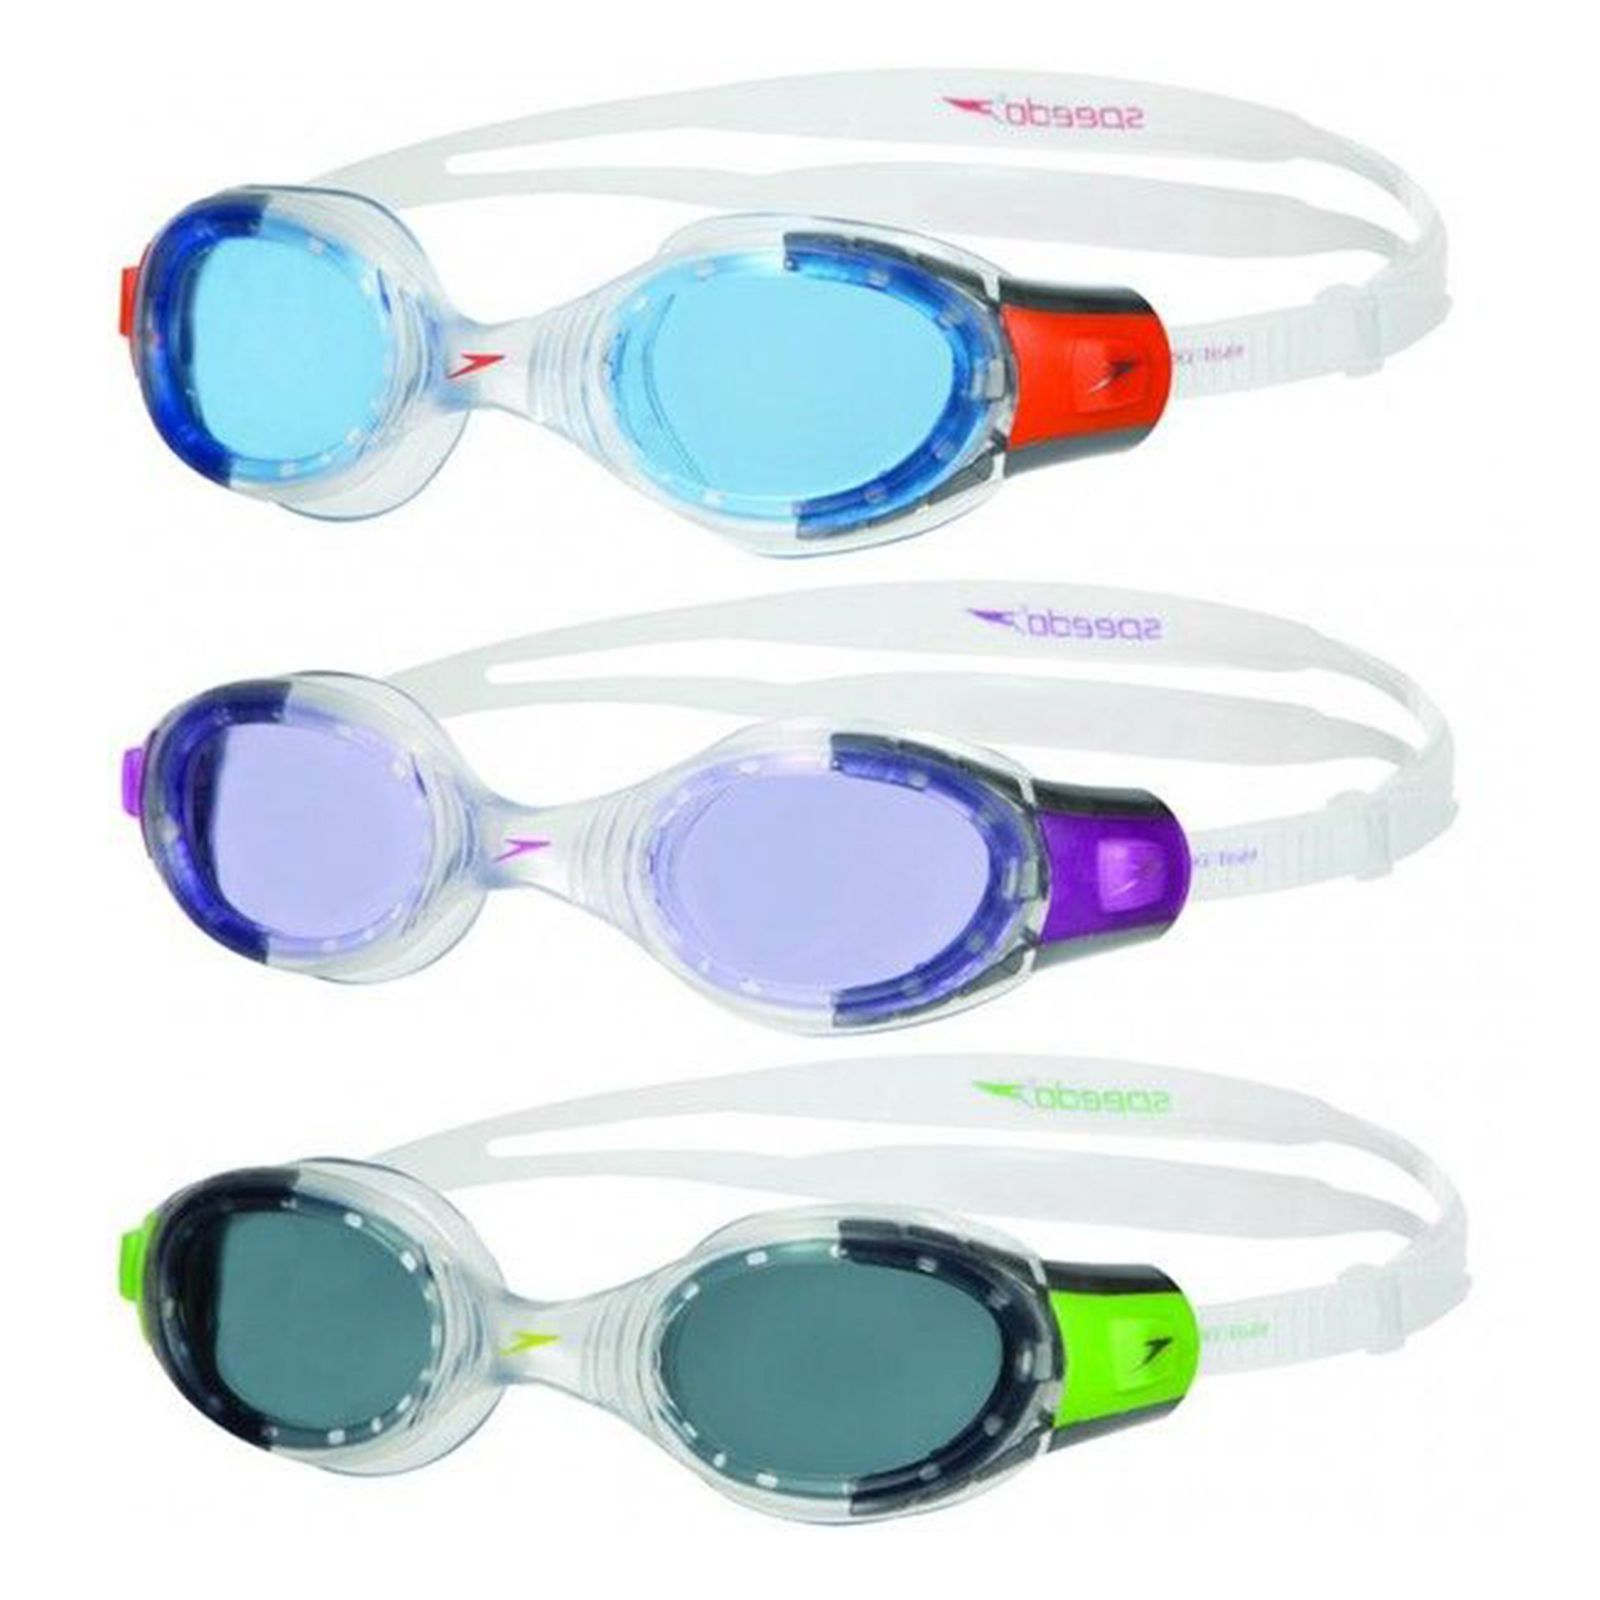 38d17b63ceb Speedo Futura Biofuse Junior Swimming Goggles Uv Protection Anti-Fog Age  6-14Yrs